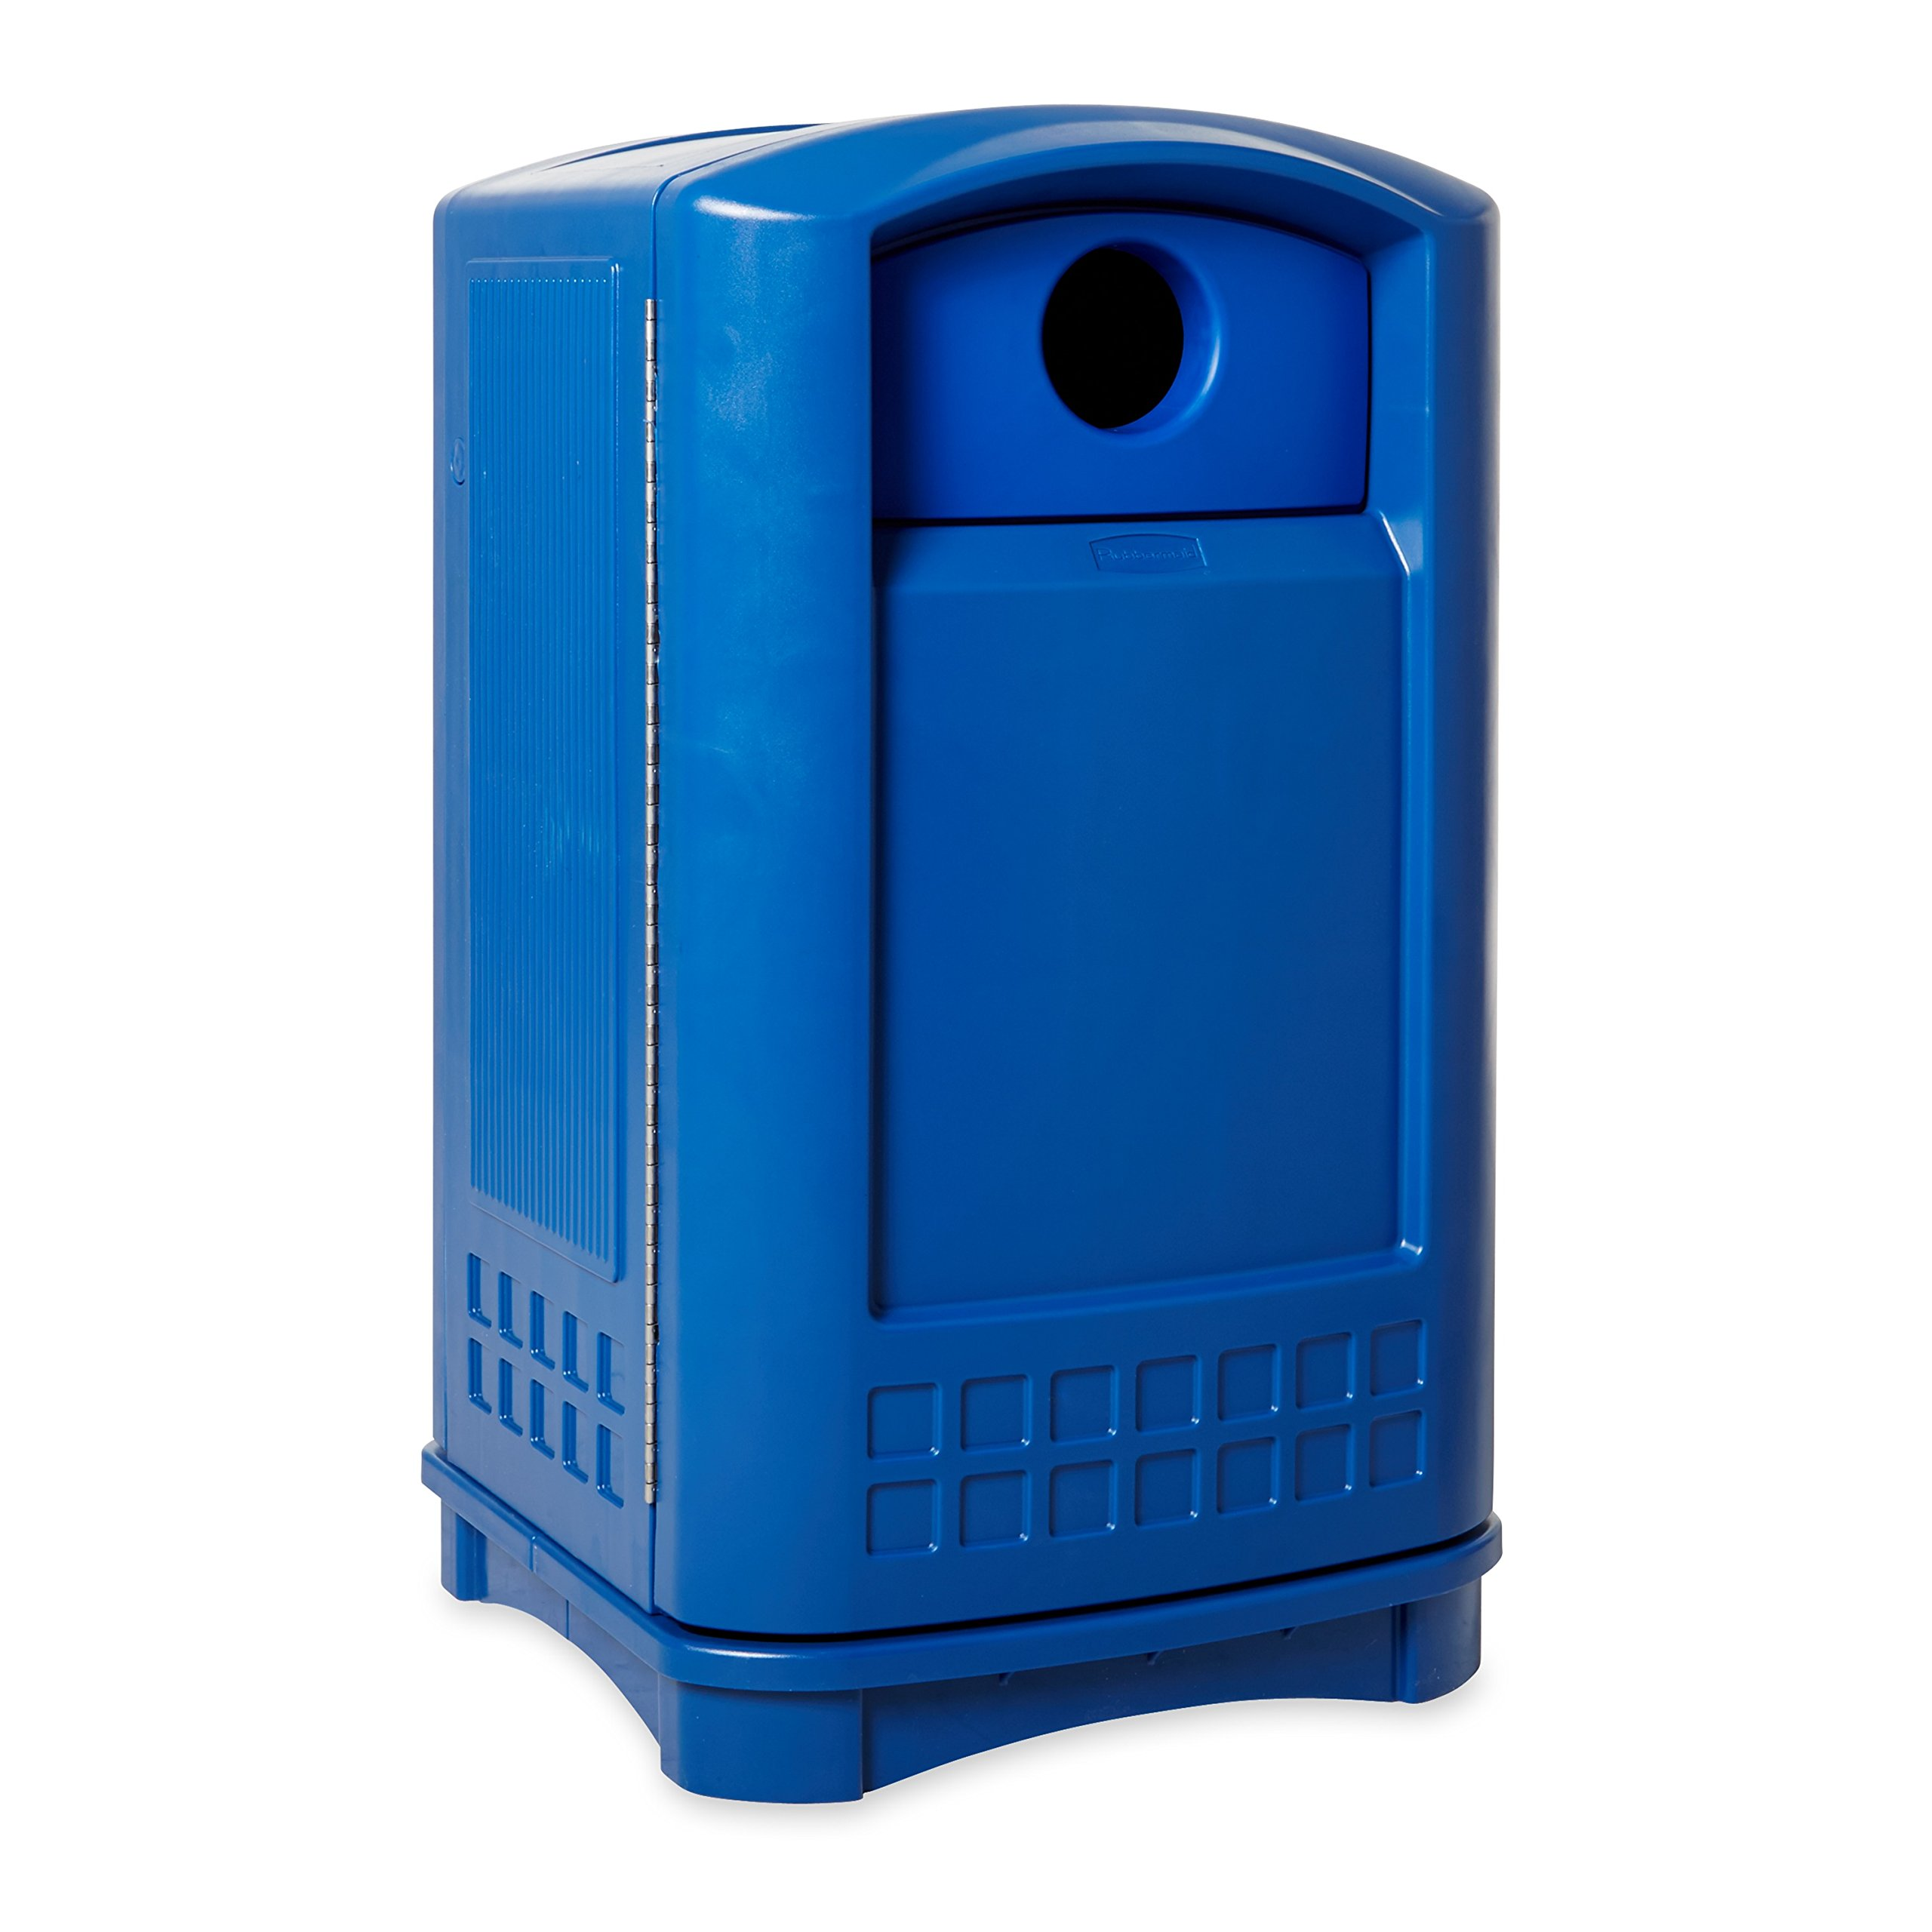 Rubbermaid Commercial Plaza Bottle/Can Recycle Bin, 50 Gallon, Blue, FG396873BLUE